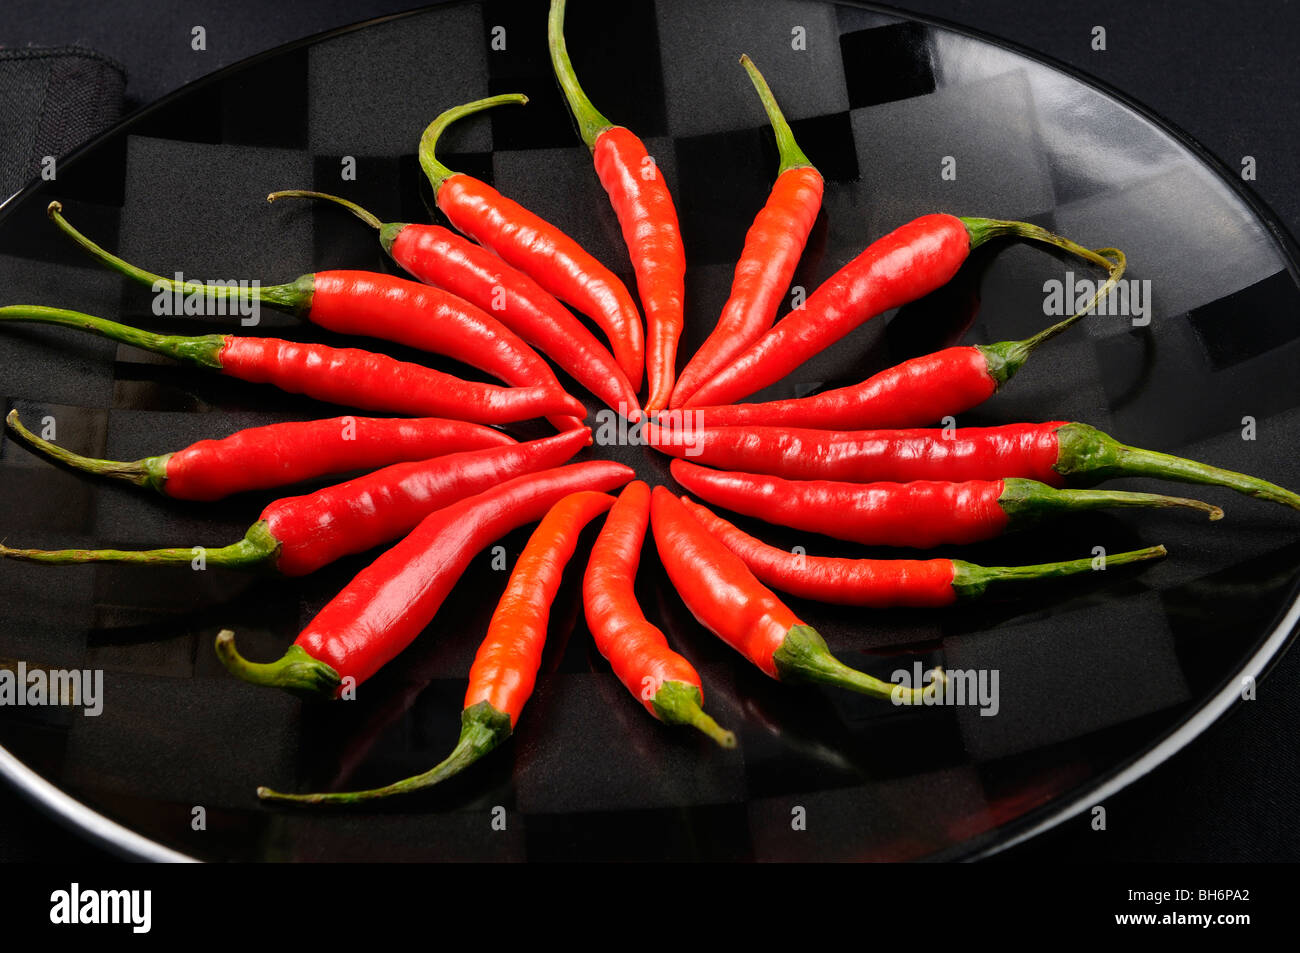 Close up of a ring of red hot Chili Peppers on a black plate - Stock Image